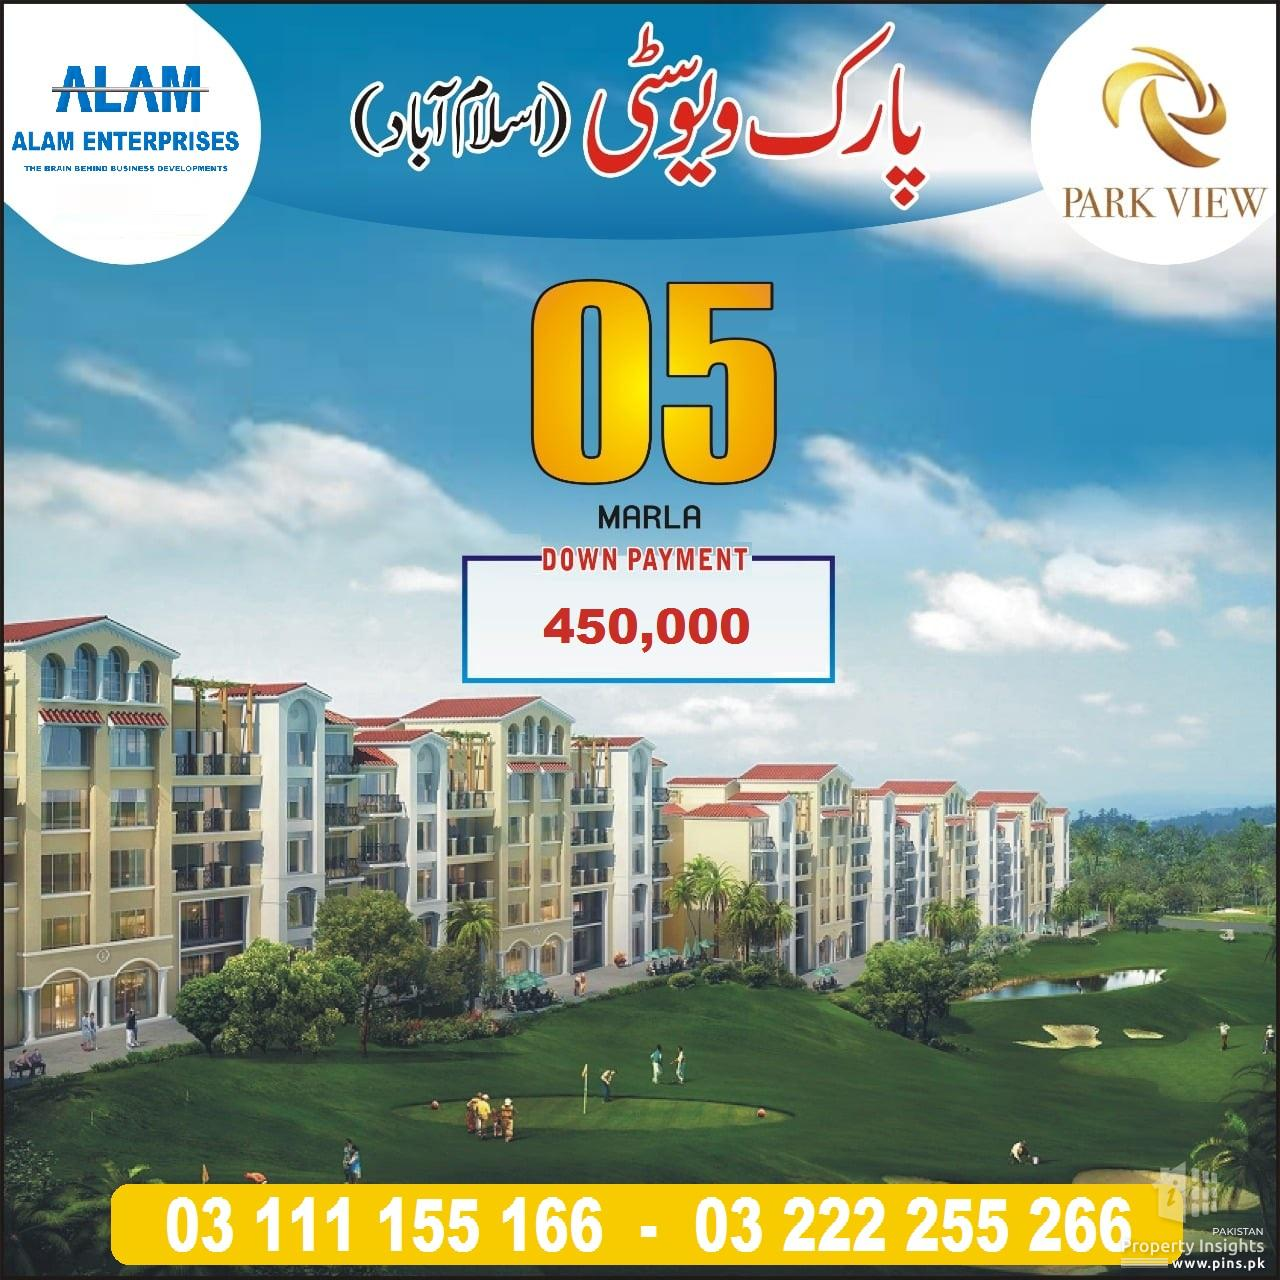 Park View City Islamabad 5 Marla plot for sale , CDA Approved society